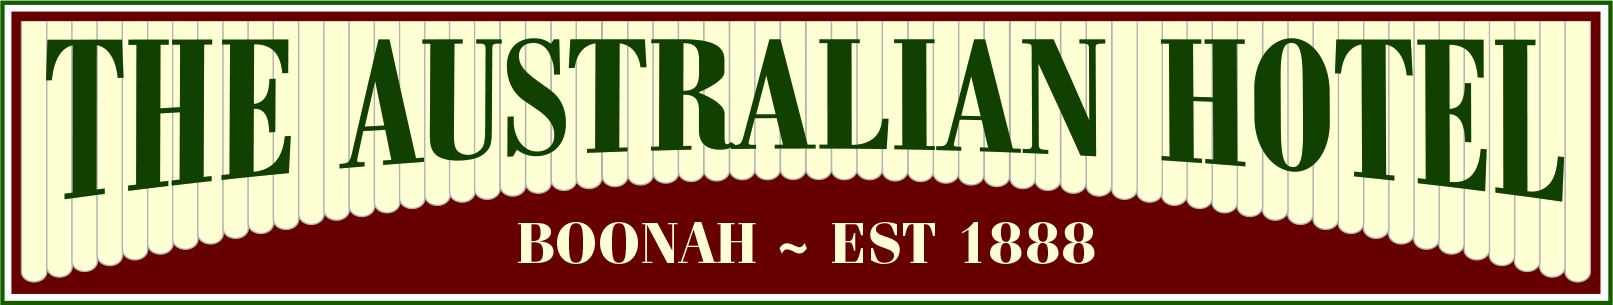 Australian Hotel - Boonah - Whitsundays Accommodation